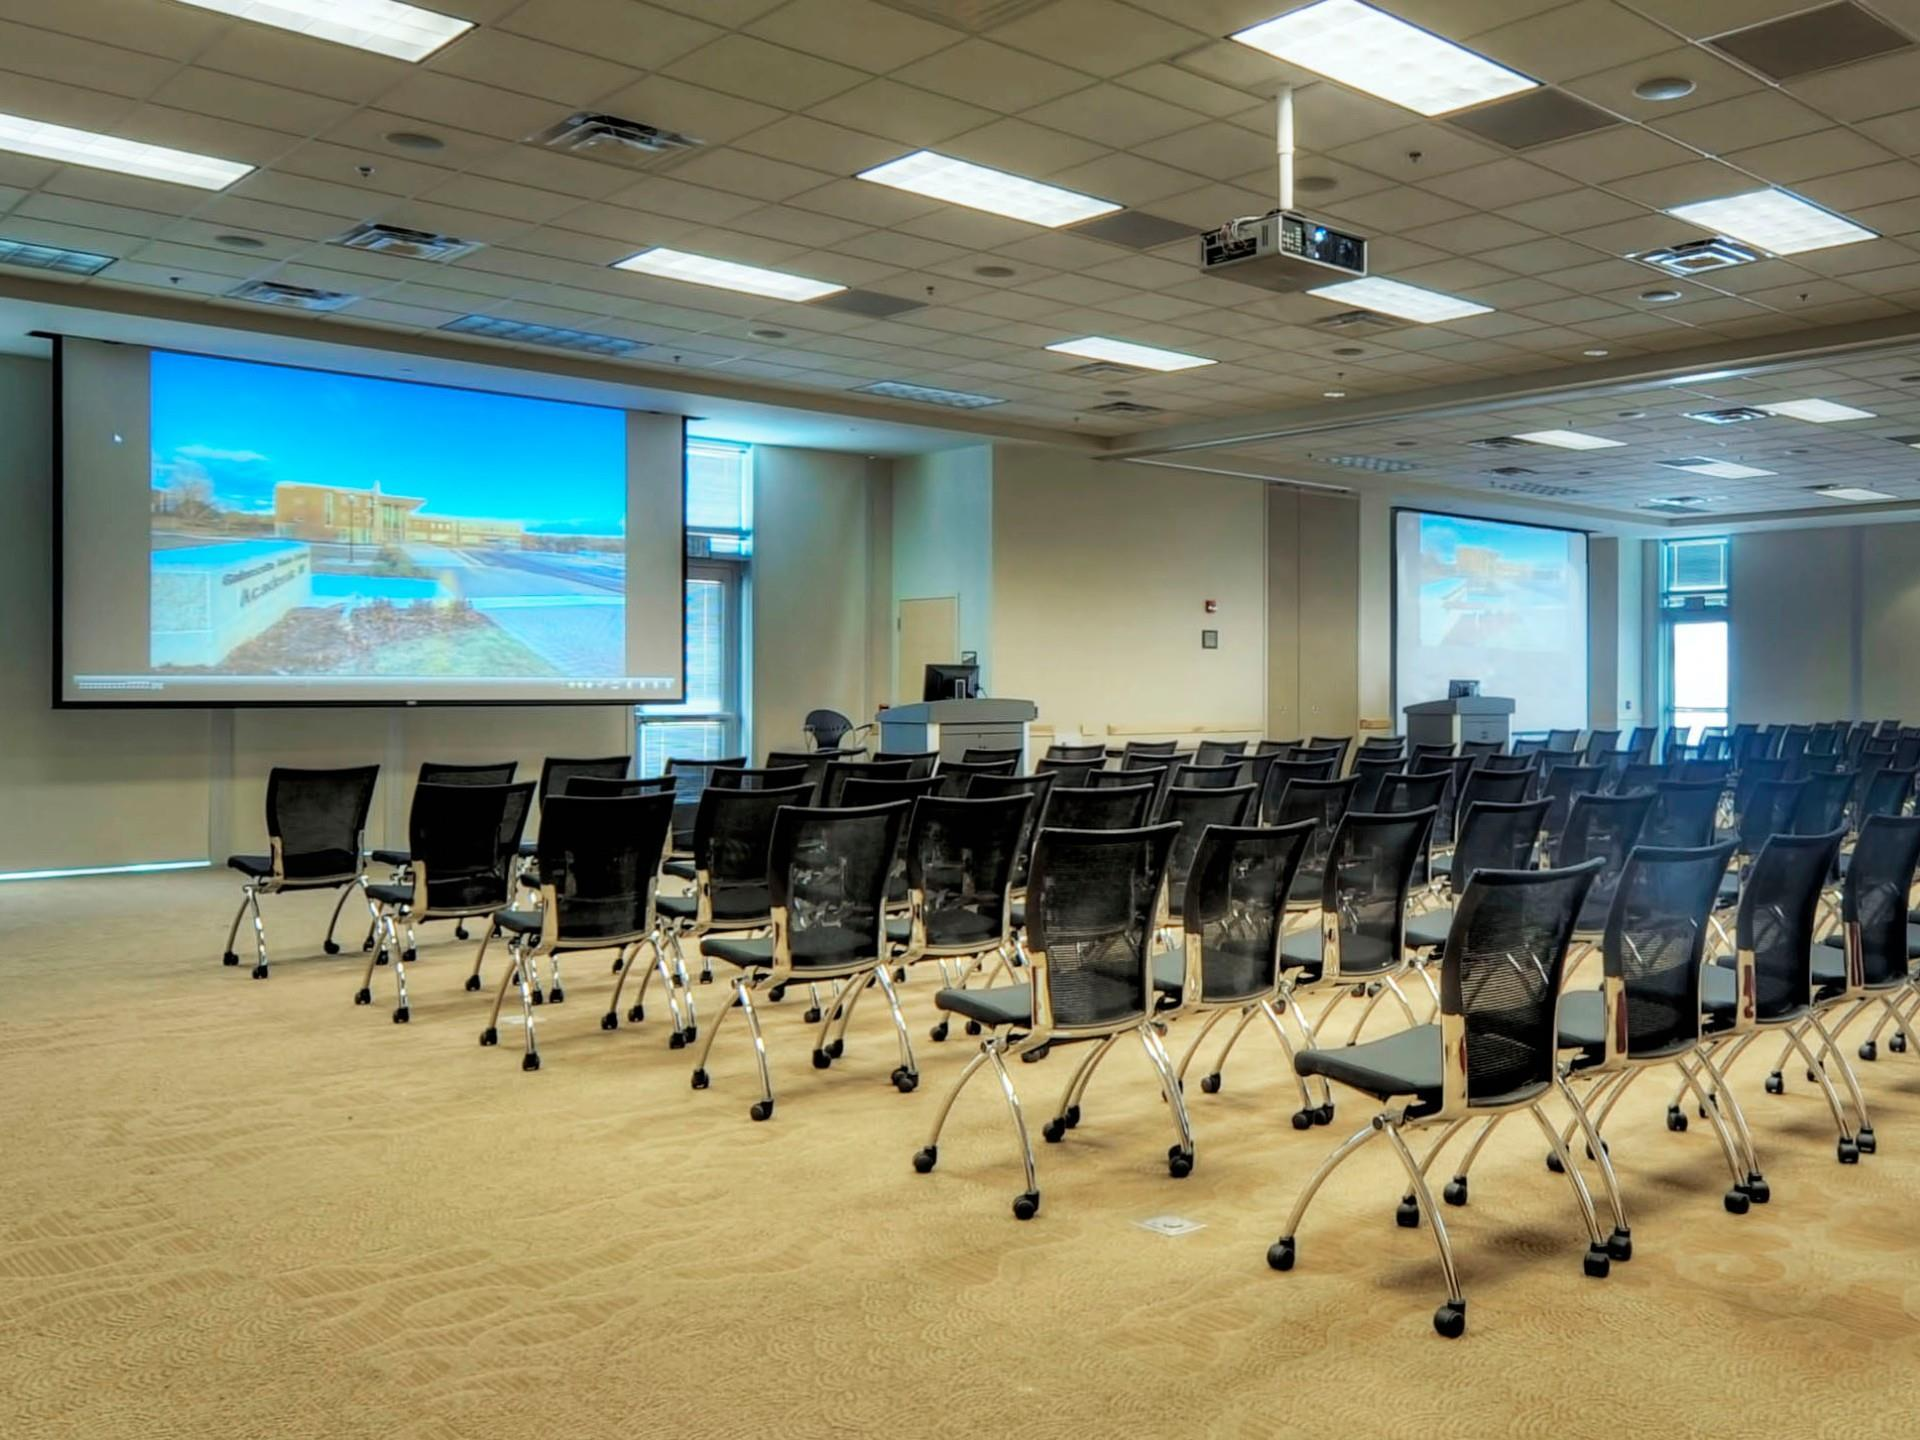 Instructional classroom with chairs and projector screen at front of the room with additional AV equipment